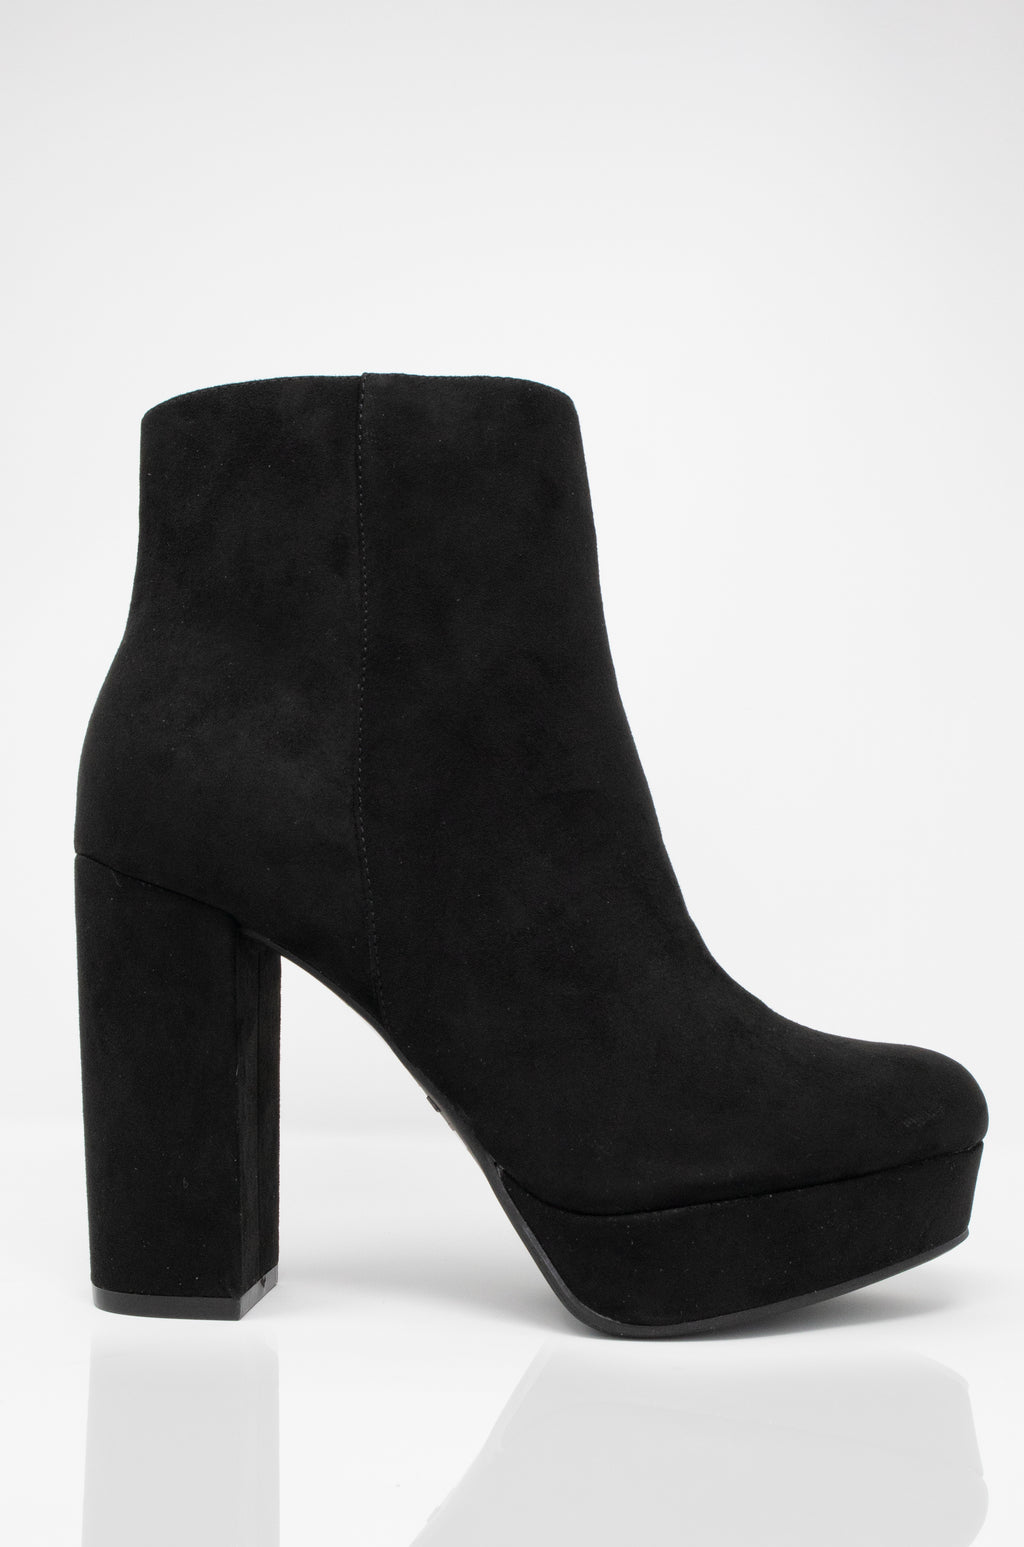 Envy - Black Platform Heeled Booties